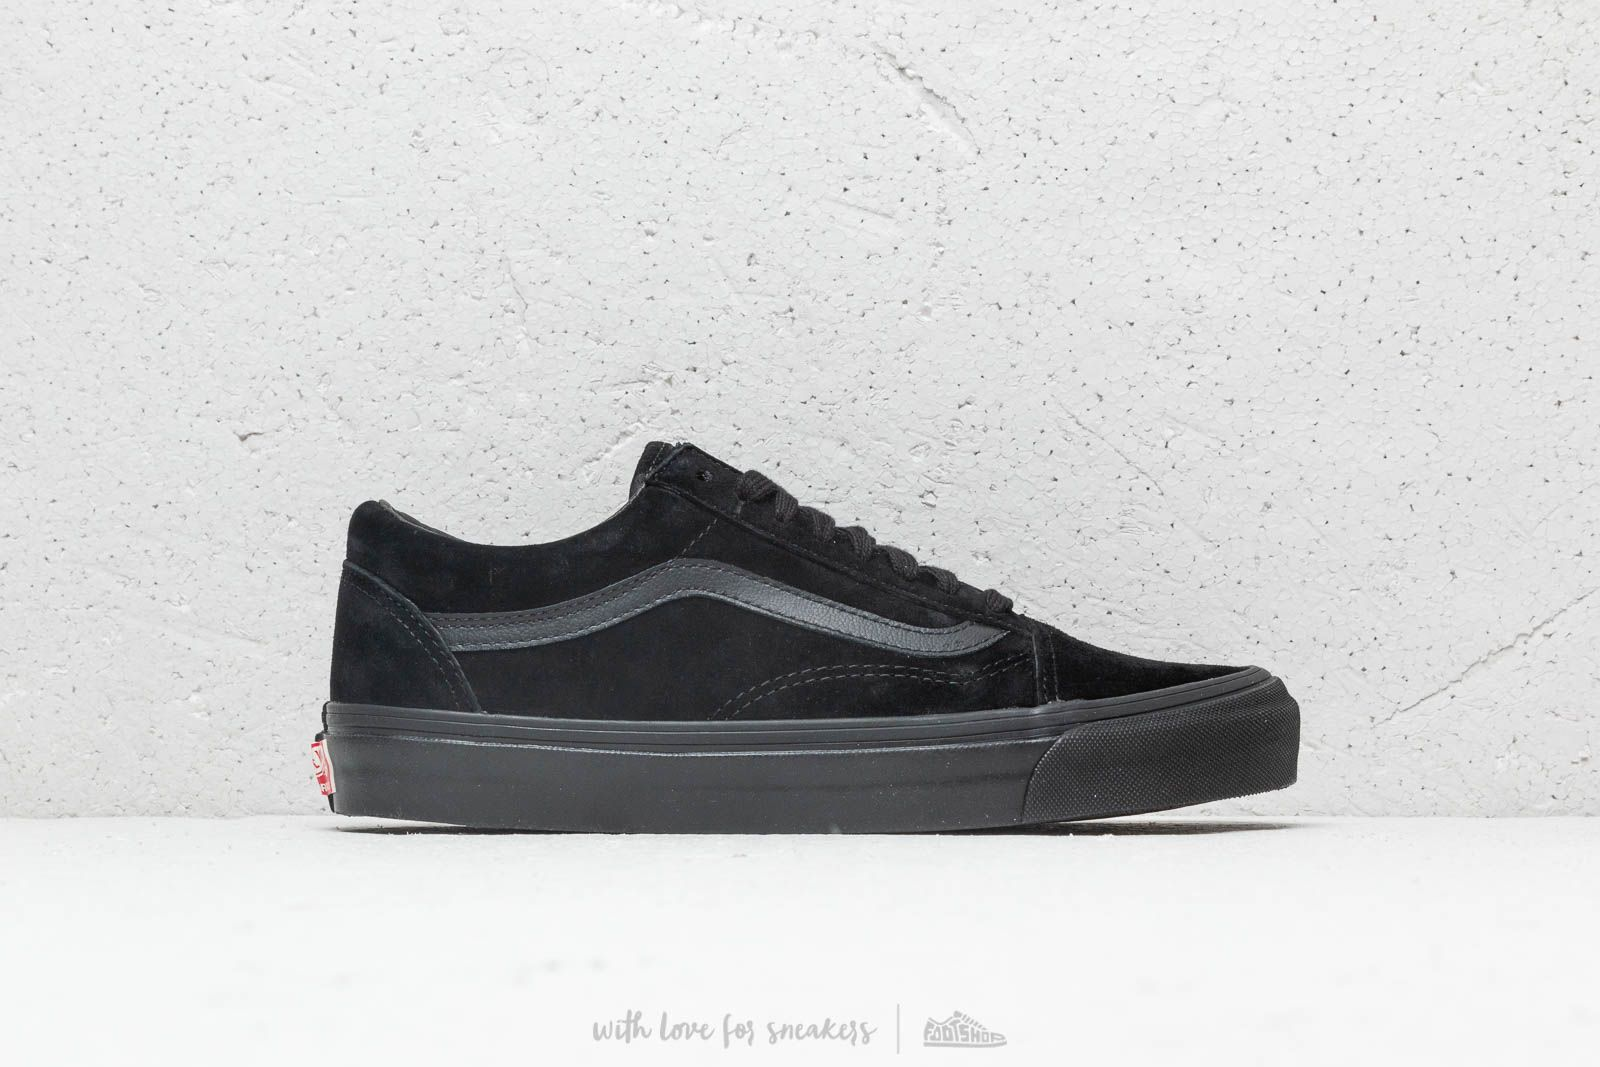 dcb5cfcf39 Vans OG Old Skool LX (Leather  Suede) Black at a great price 83